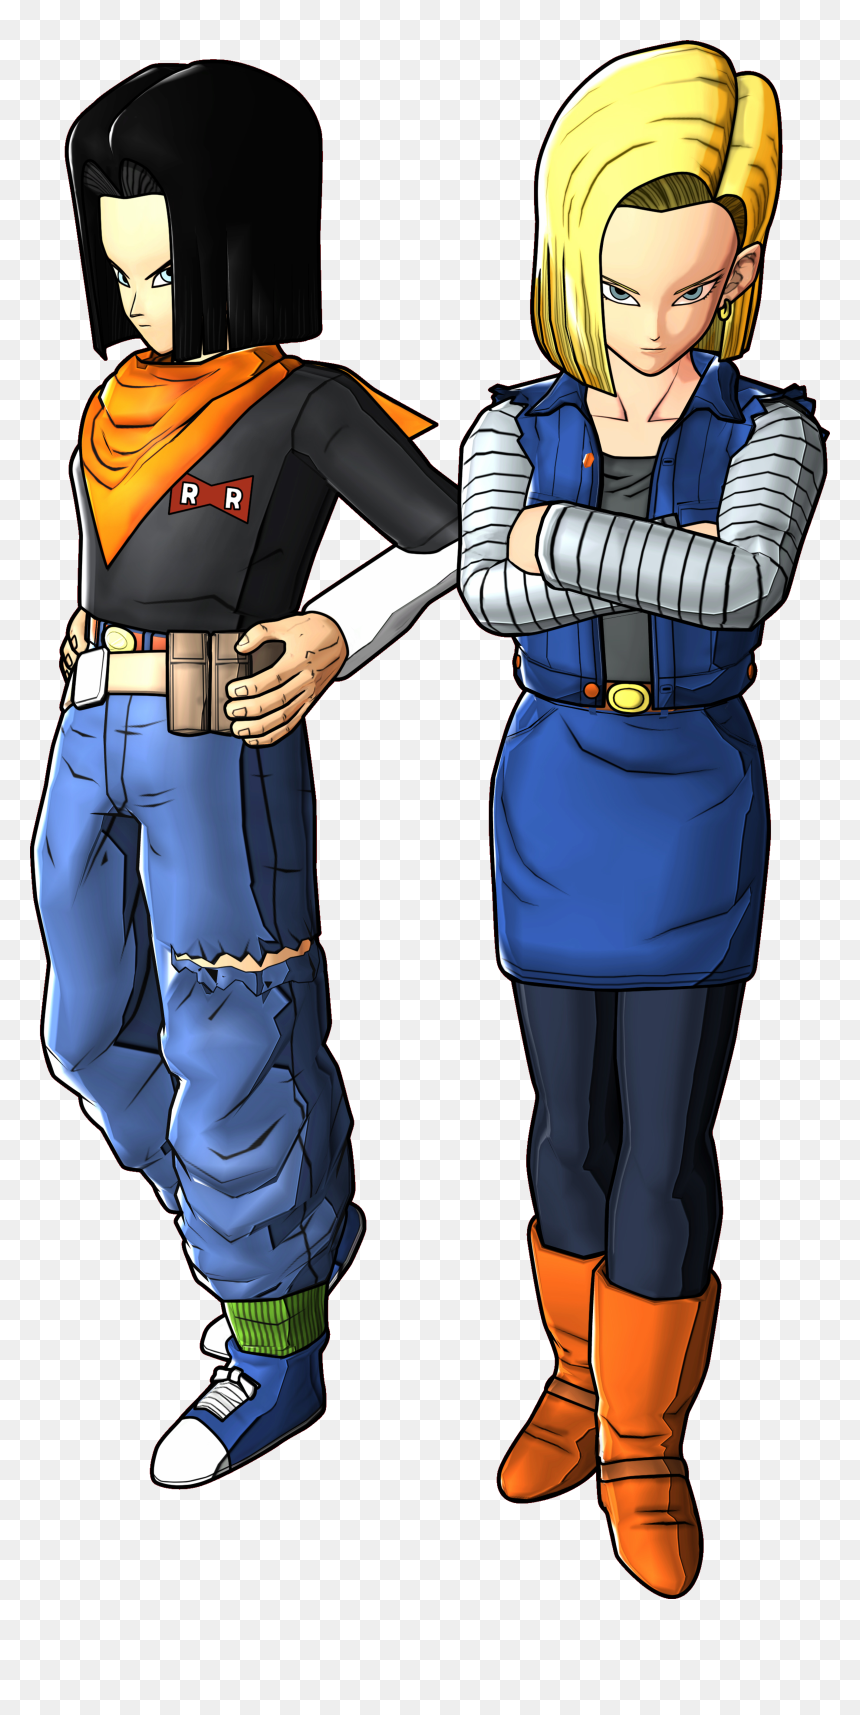 Android18 And 17 Battle Of Z Render - Android 18 And 19, HD Png Download